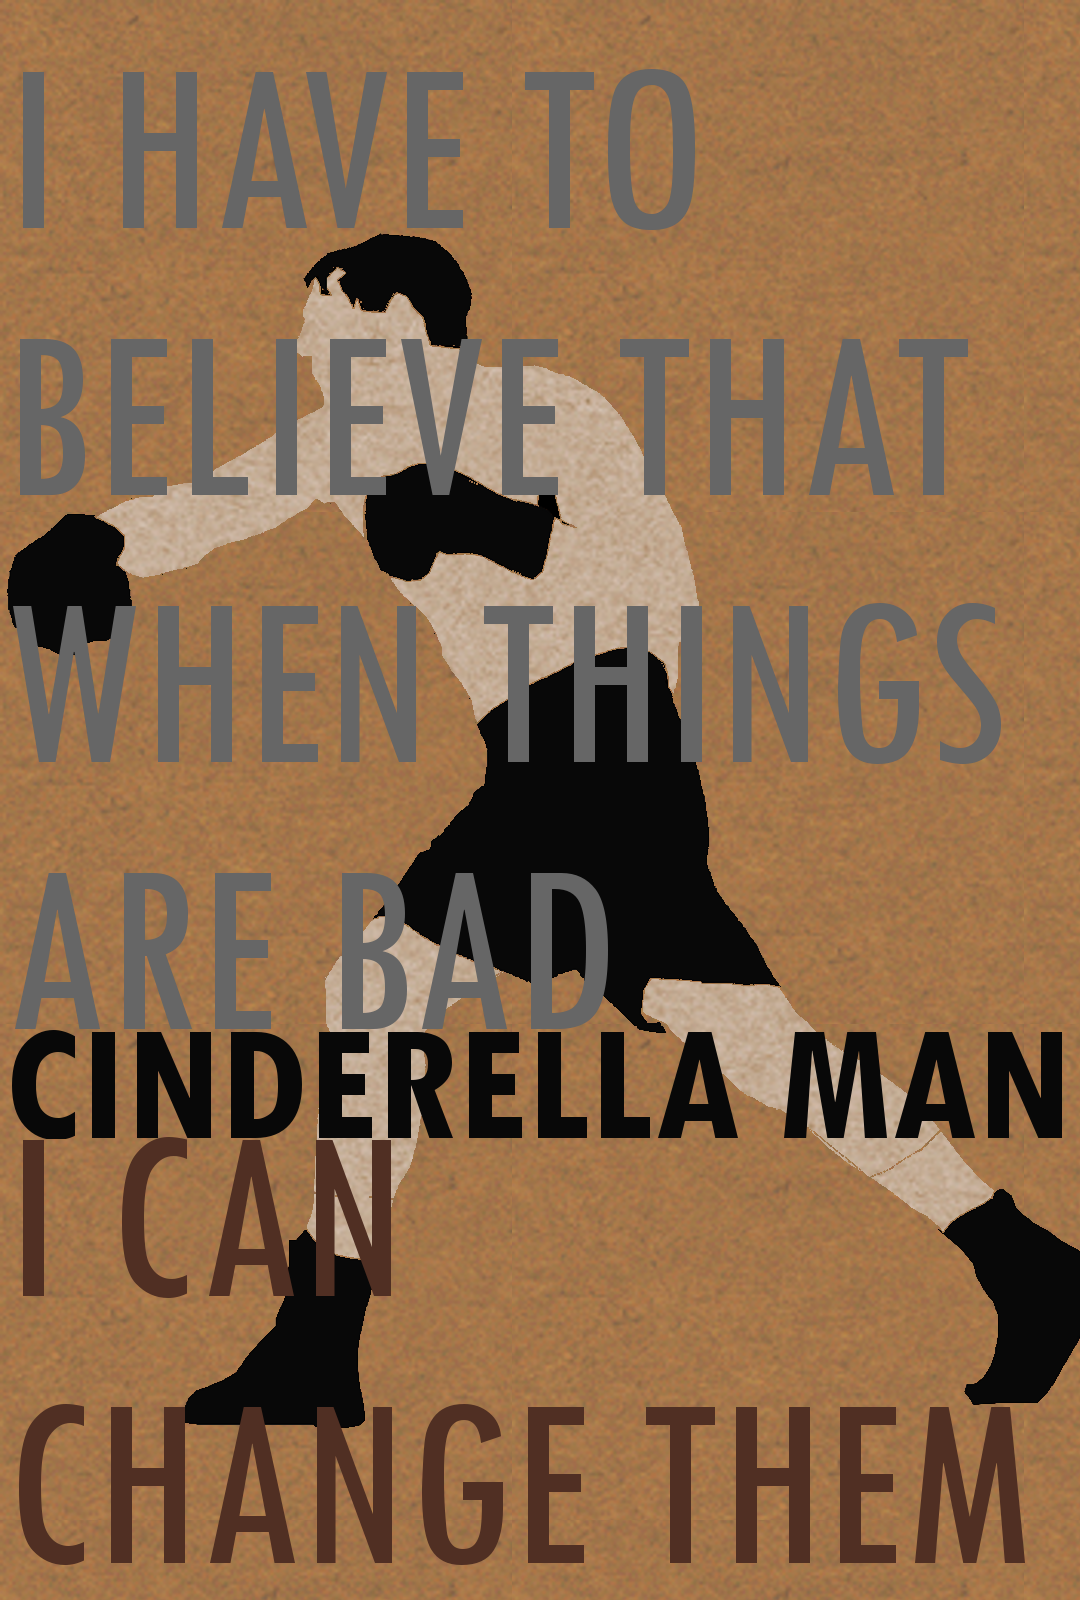 Cinderella Man Quotes Simple Cinderella Man Minimalist Poster  Movies  Pinterest  Minimalist